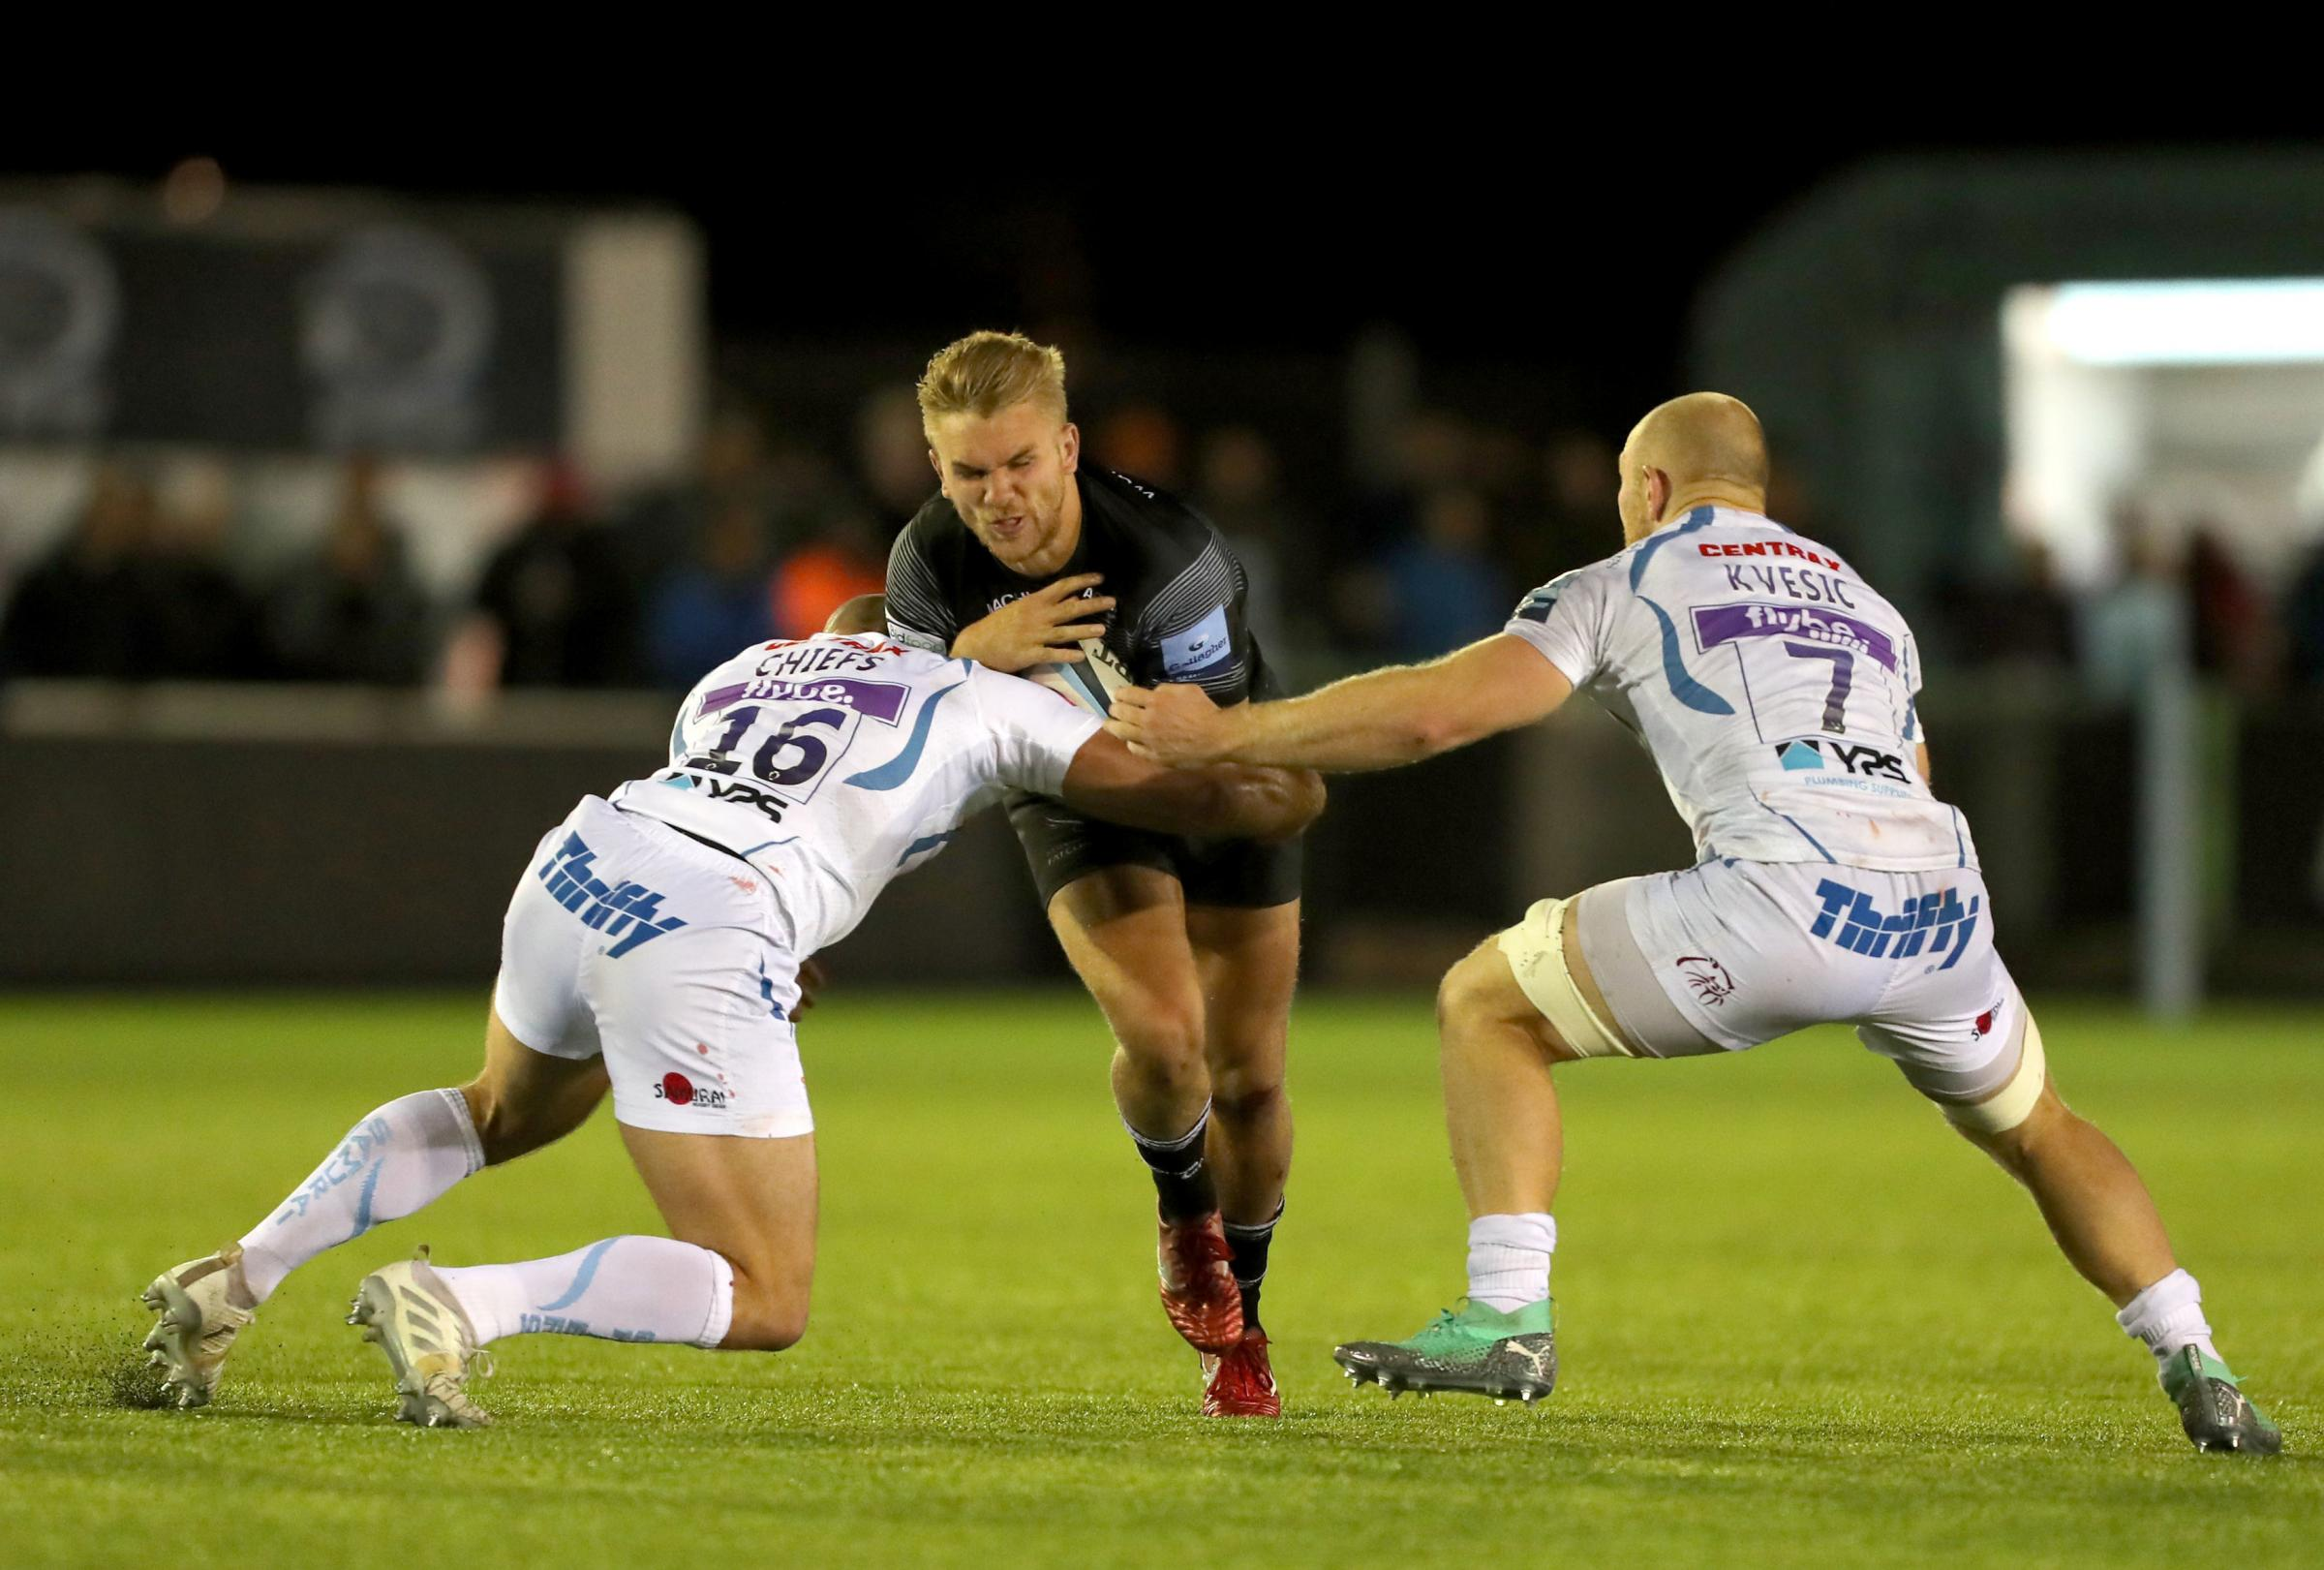 Newcastle Falcons Chris Harris (centre) is tackled by Exeter Chiefs Jack Yeandle (left) and Matt Kvesic during the Gallagher Premiership match at Kingston Park, Newcastle. PRESS ASSOCIATION Photo. Picture date: Friday September 21, 2018. See PA story RUGB